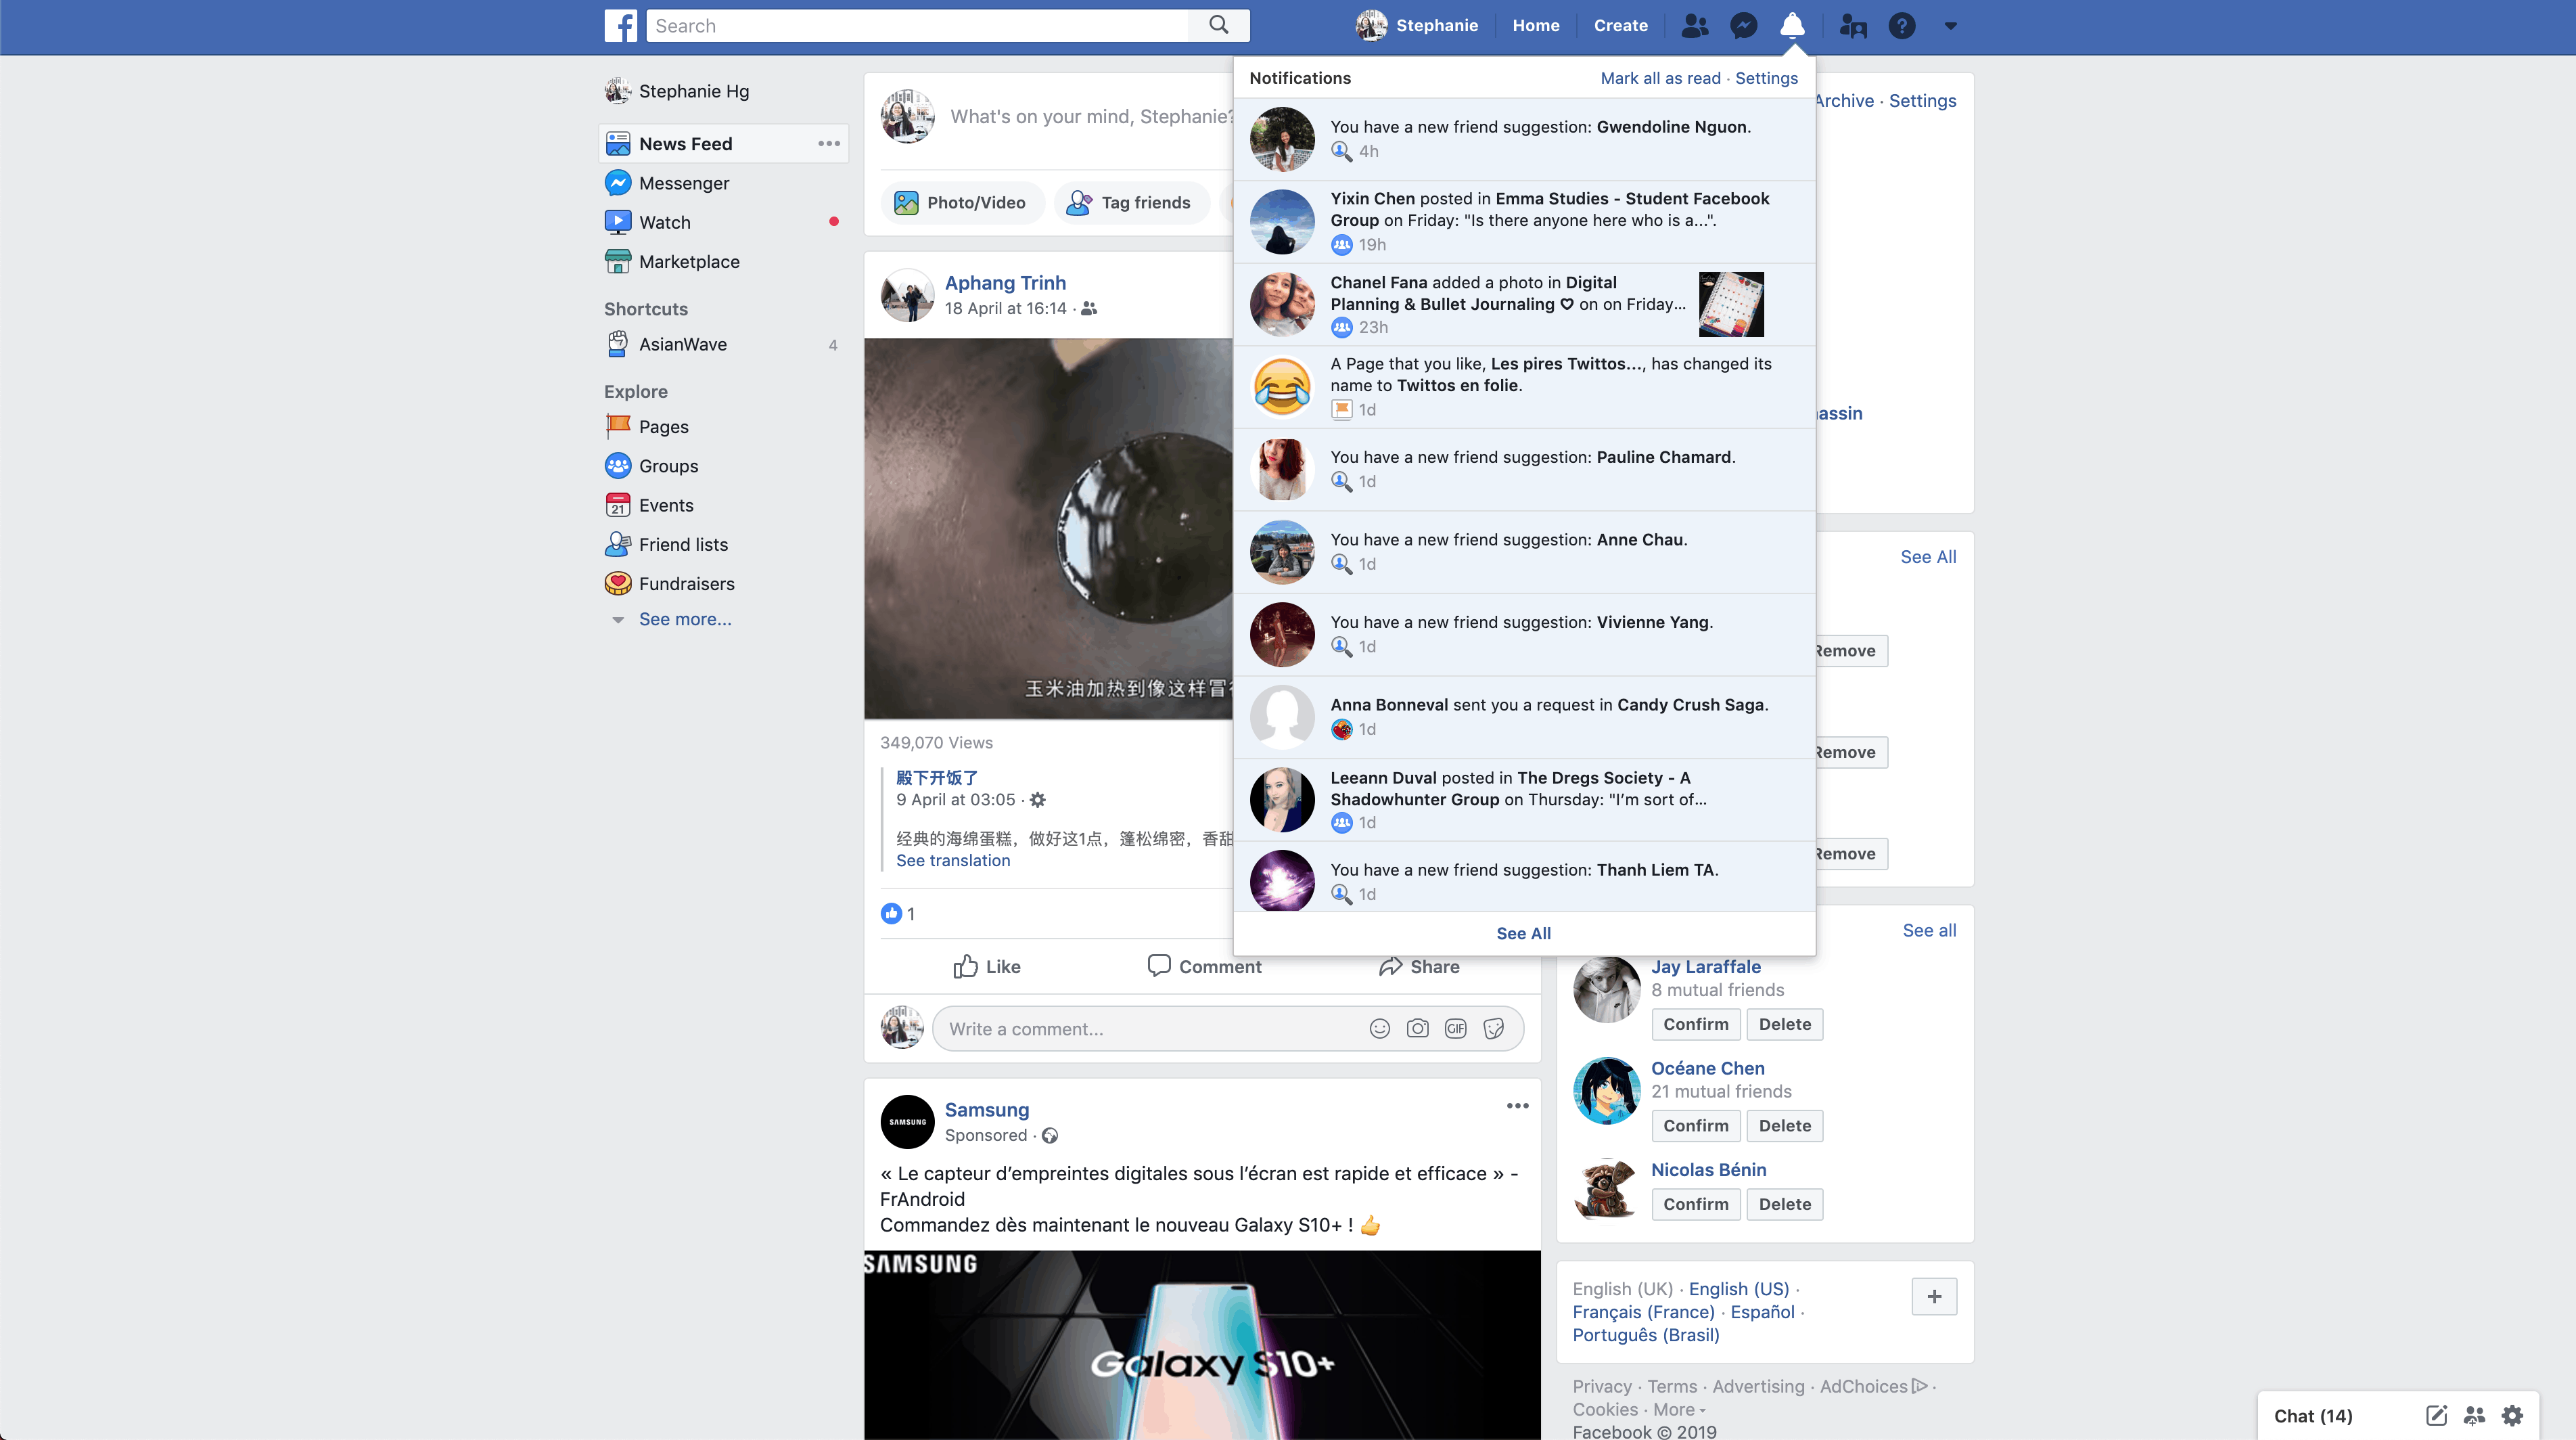 Notifications by Facebook